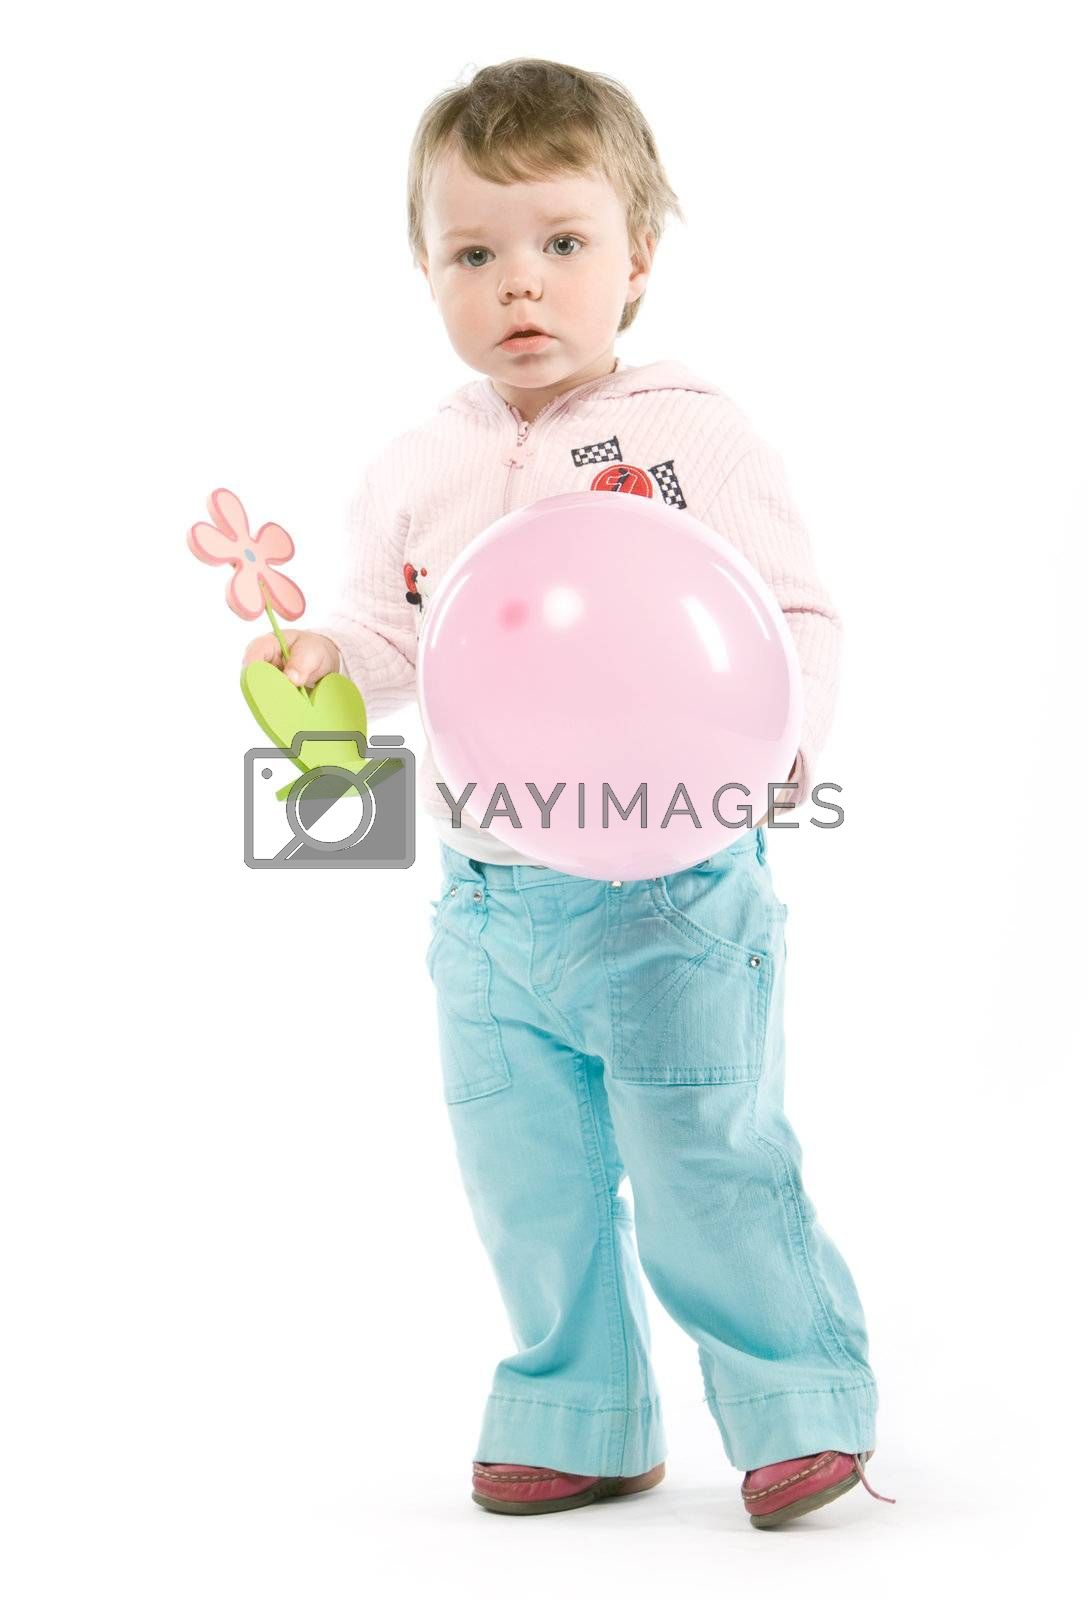 Child with pink jacket, pink balloon, wooden flower. Isolated on white